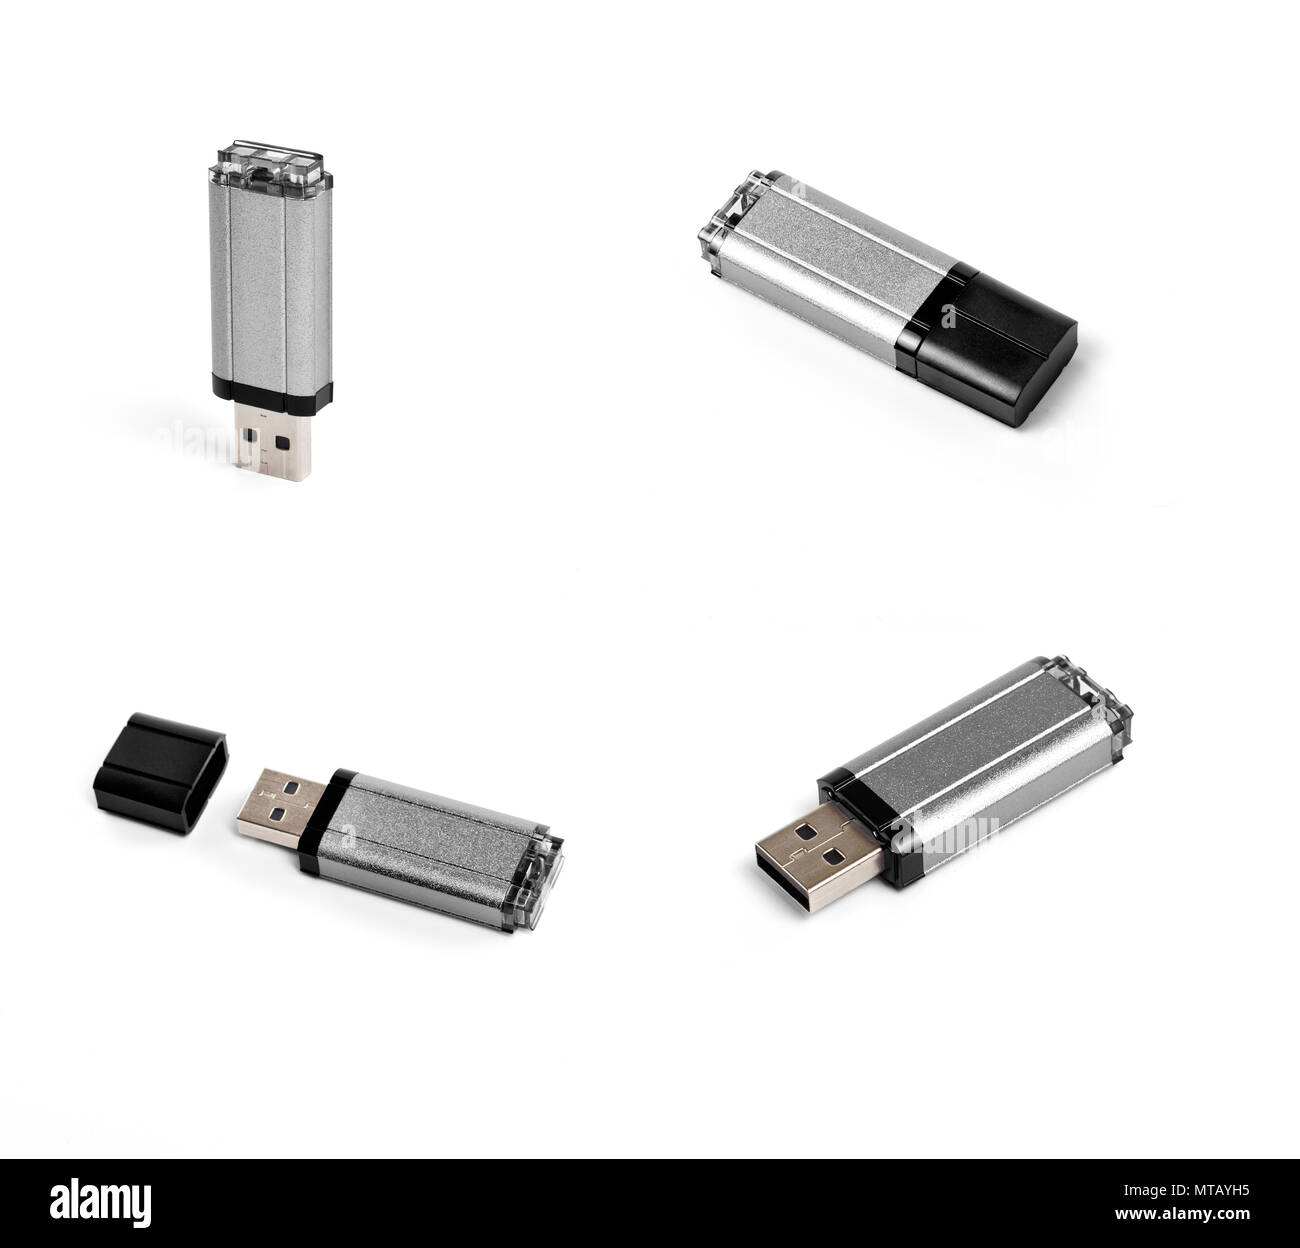 Different point of view of usb flash drive on a white background - Stock Image